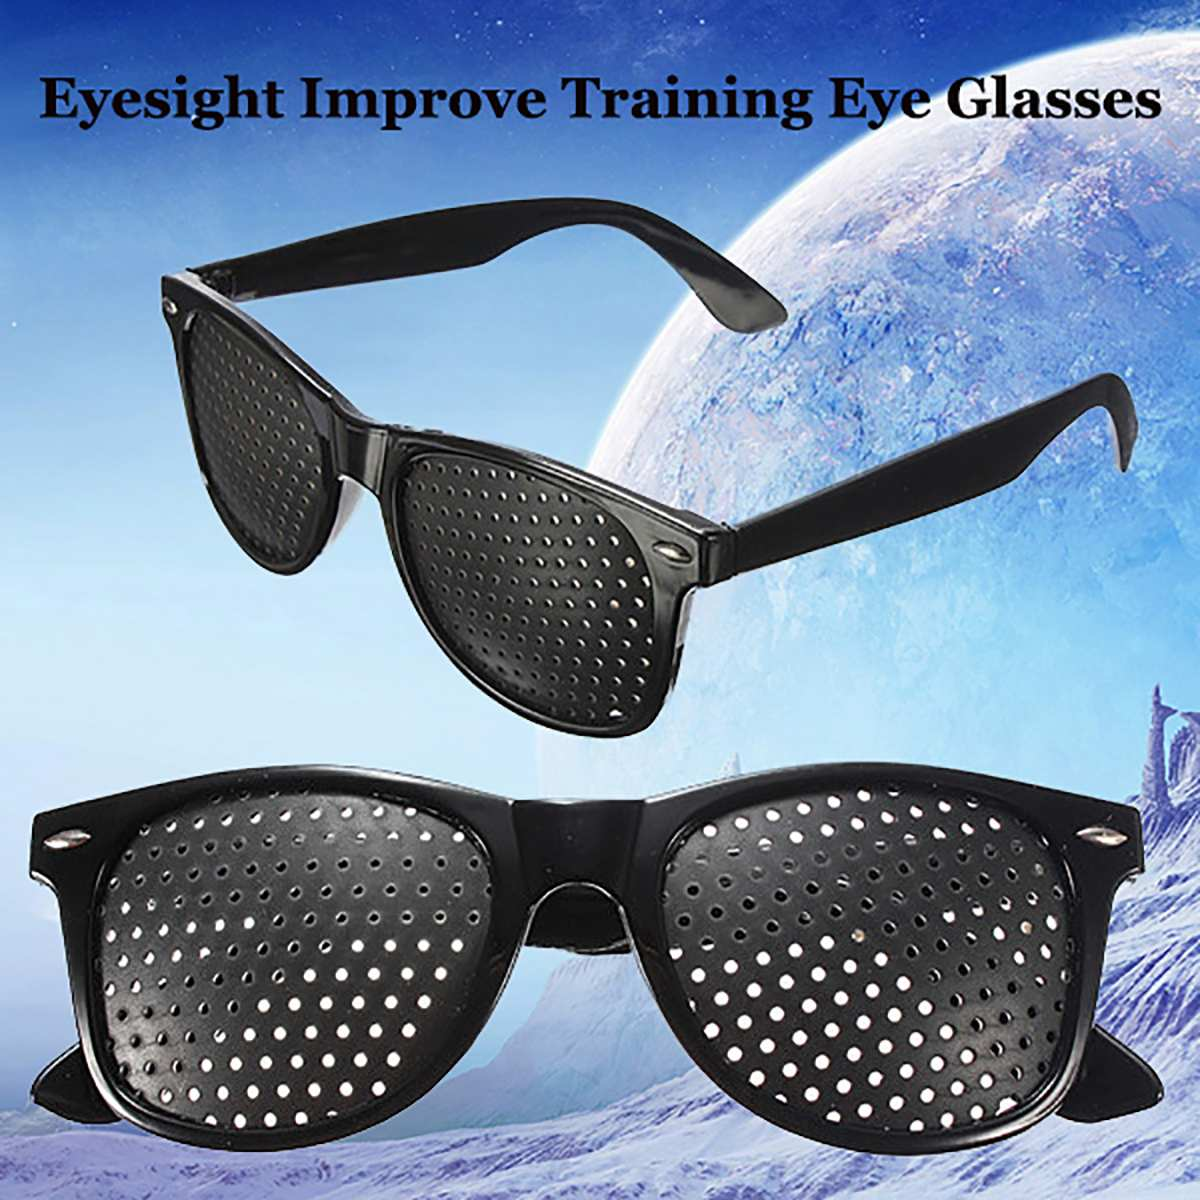 Black Unisex Vision Care Pinholes Eye Exercise Eyeglasses Pinholes Glasses Eyesight Improve plastic High Quality